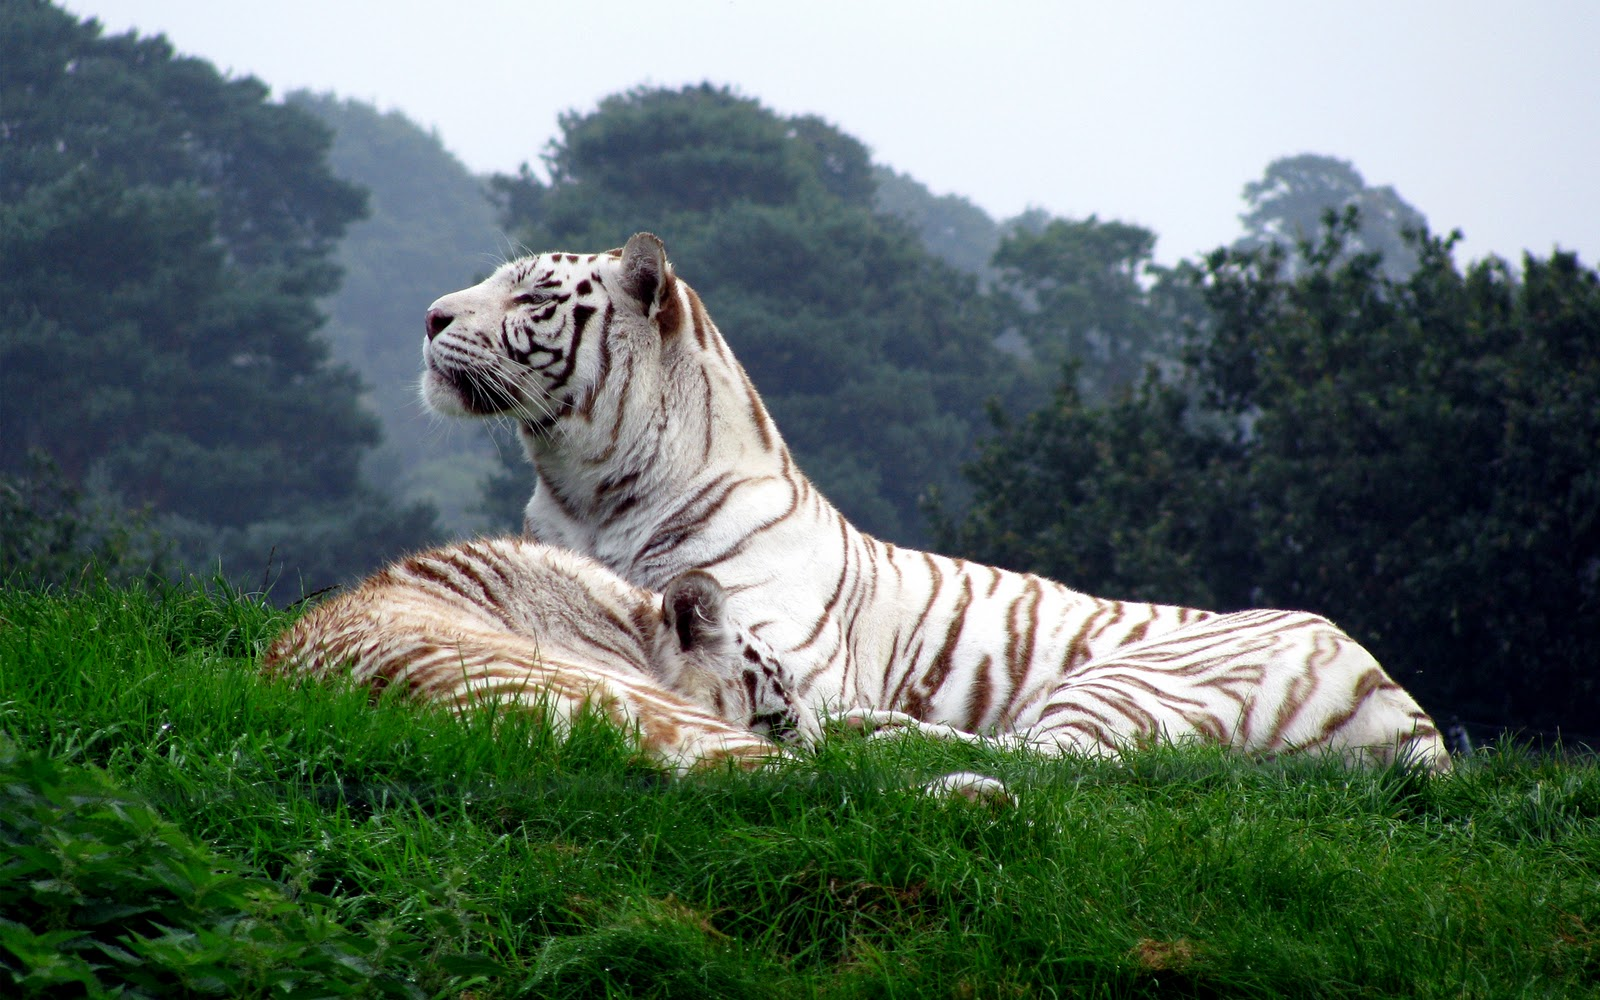 http://2.bp.blogspot.com/-Ncbuk5fHGLA/UF2DD5aLYeI/AAAAAAAAGVI/D0zbpdo-KKY/s1600/HD+White+Tiger+Wallpapers+-+Wallpapers+fever.jpg